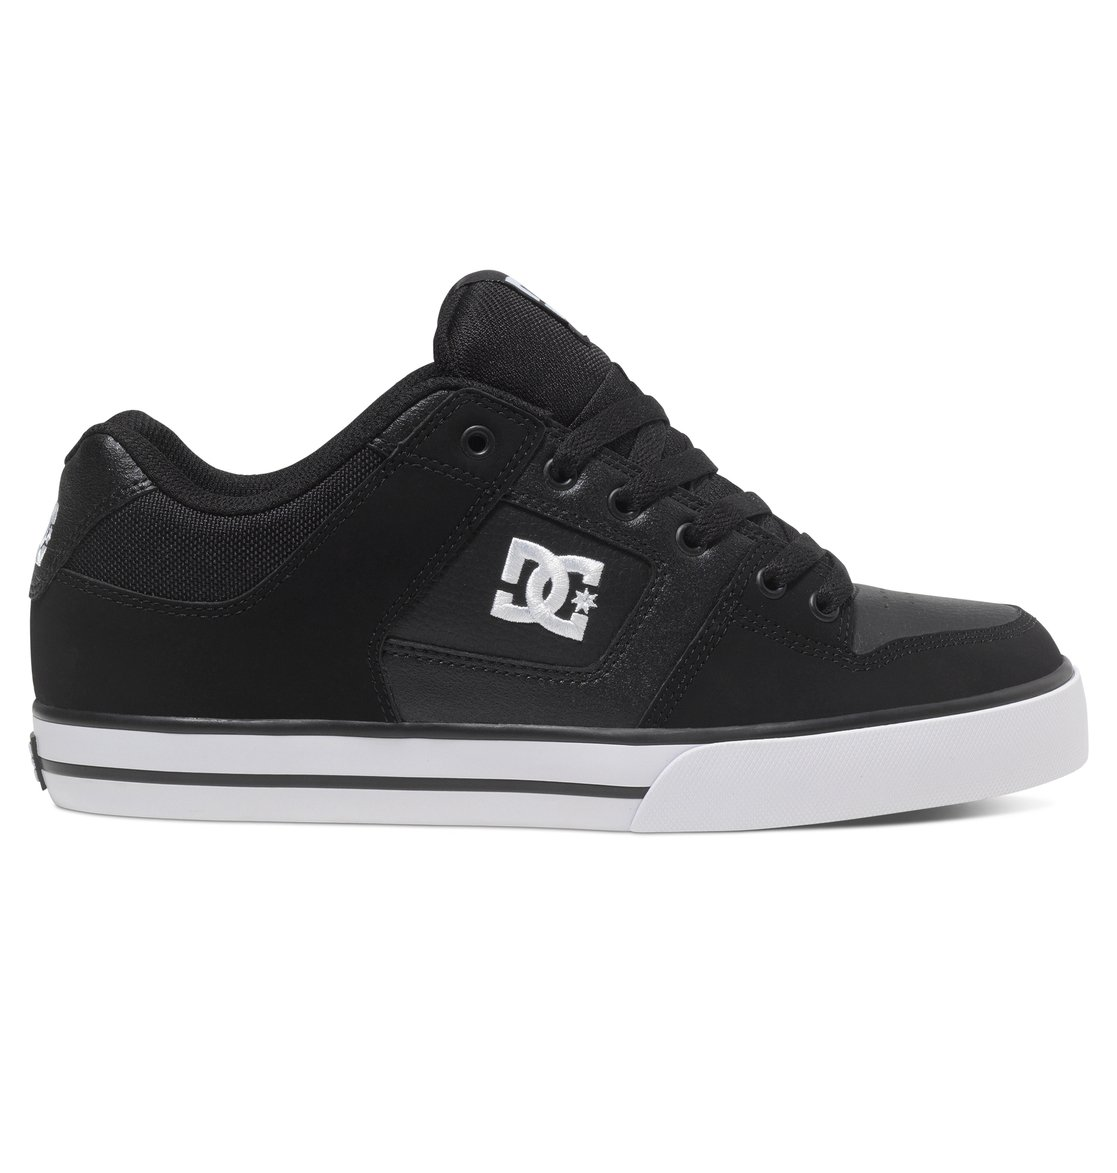 Mens Dc Shoes Trainers - Blue KS14421